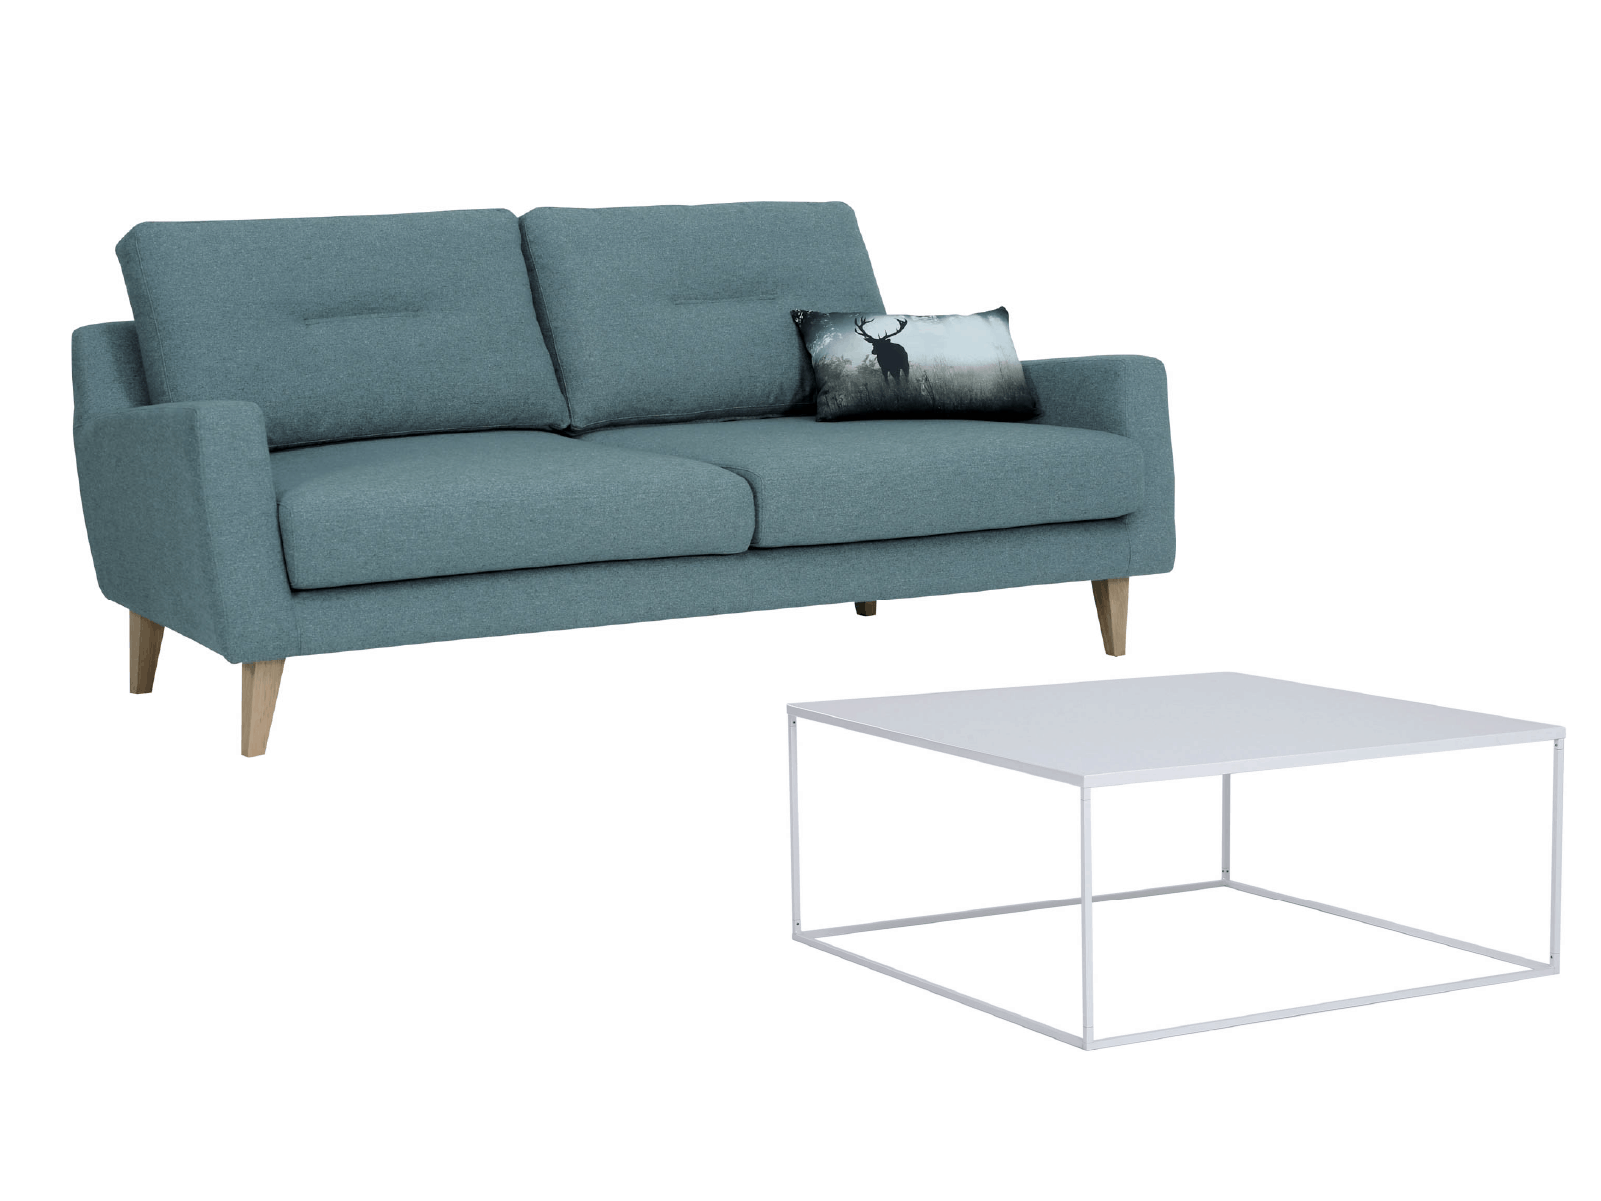 Malibu 3 Seater With Coffee Table Set (Marble Blue)@2x